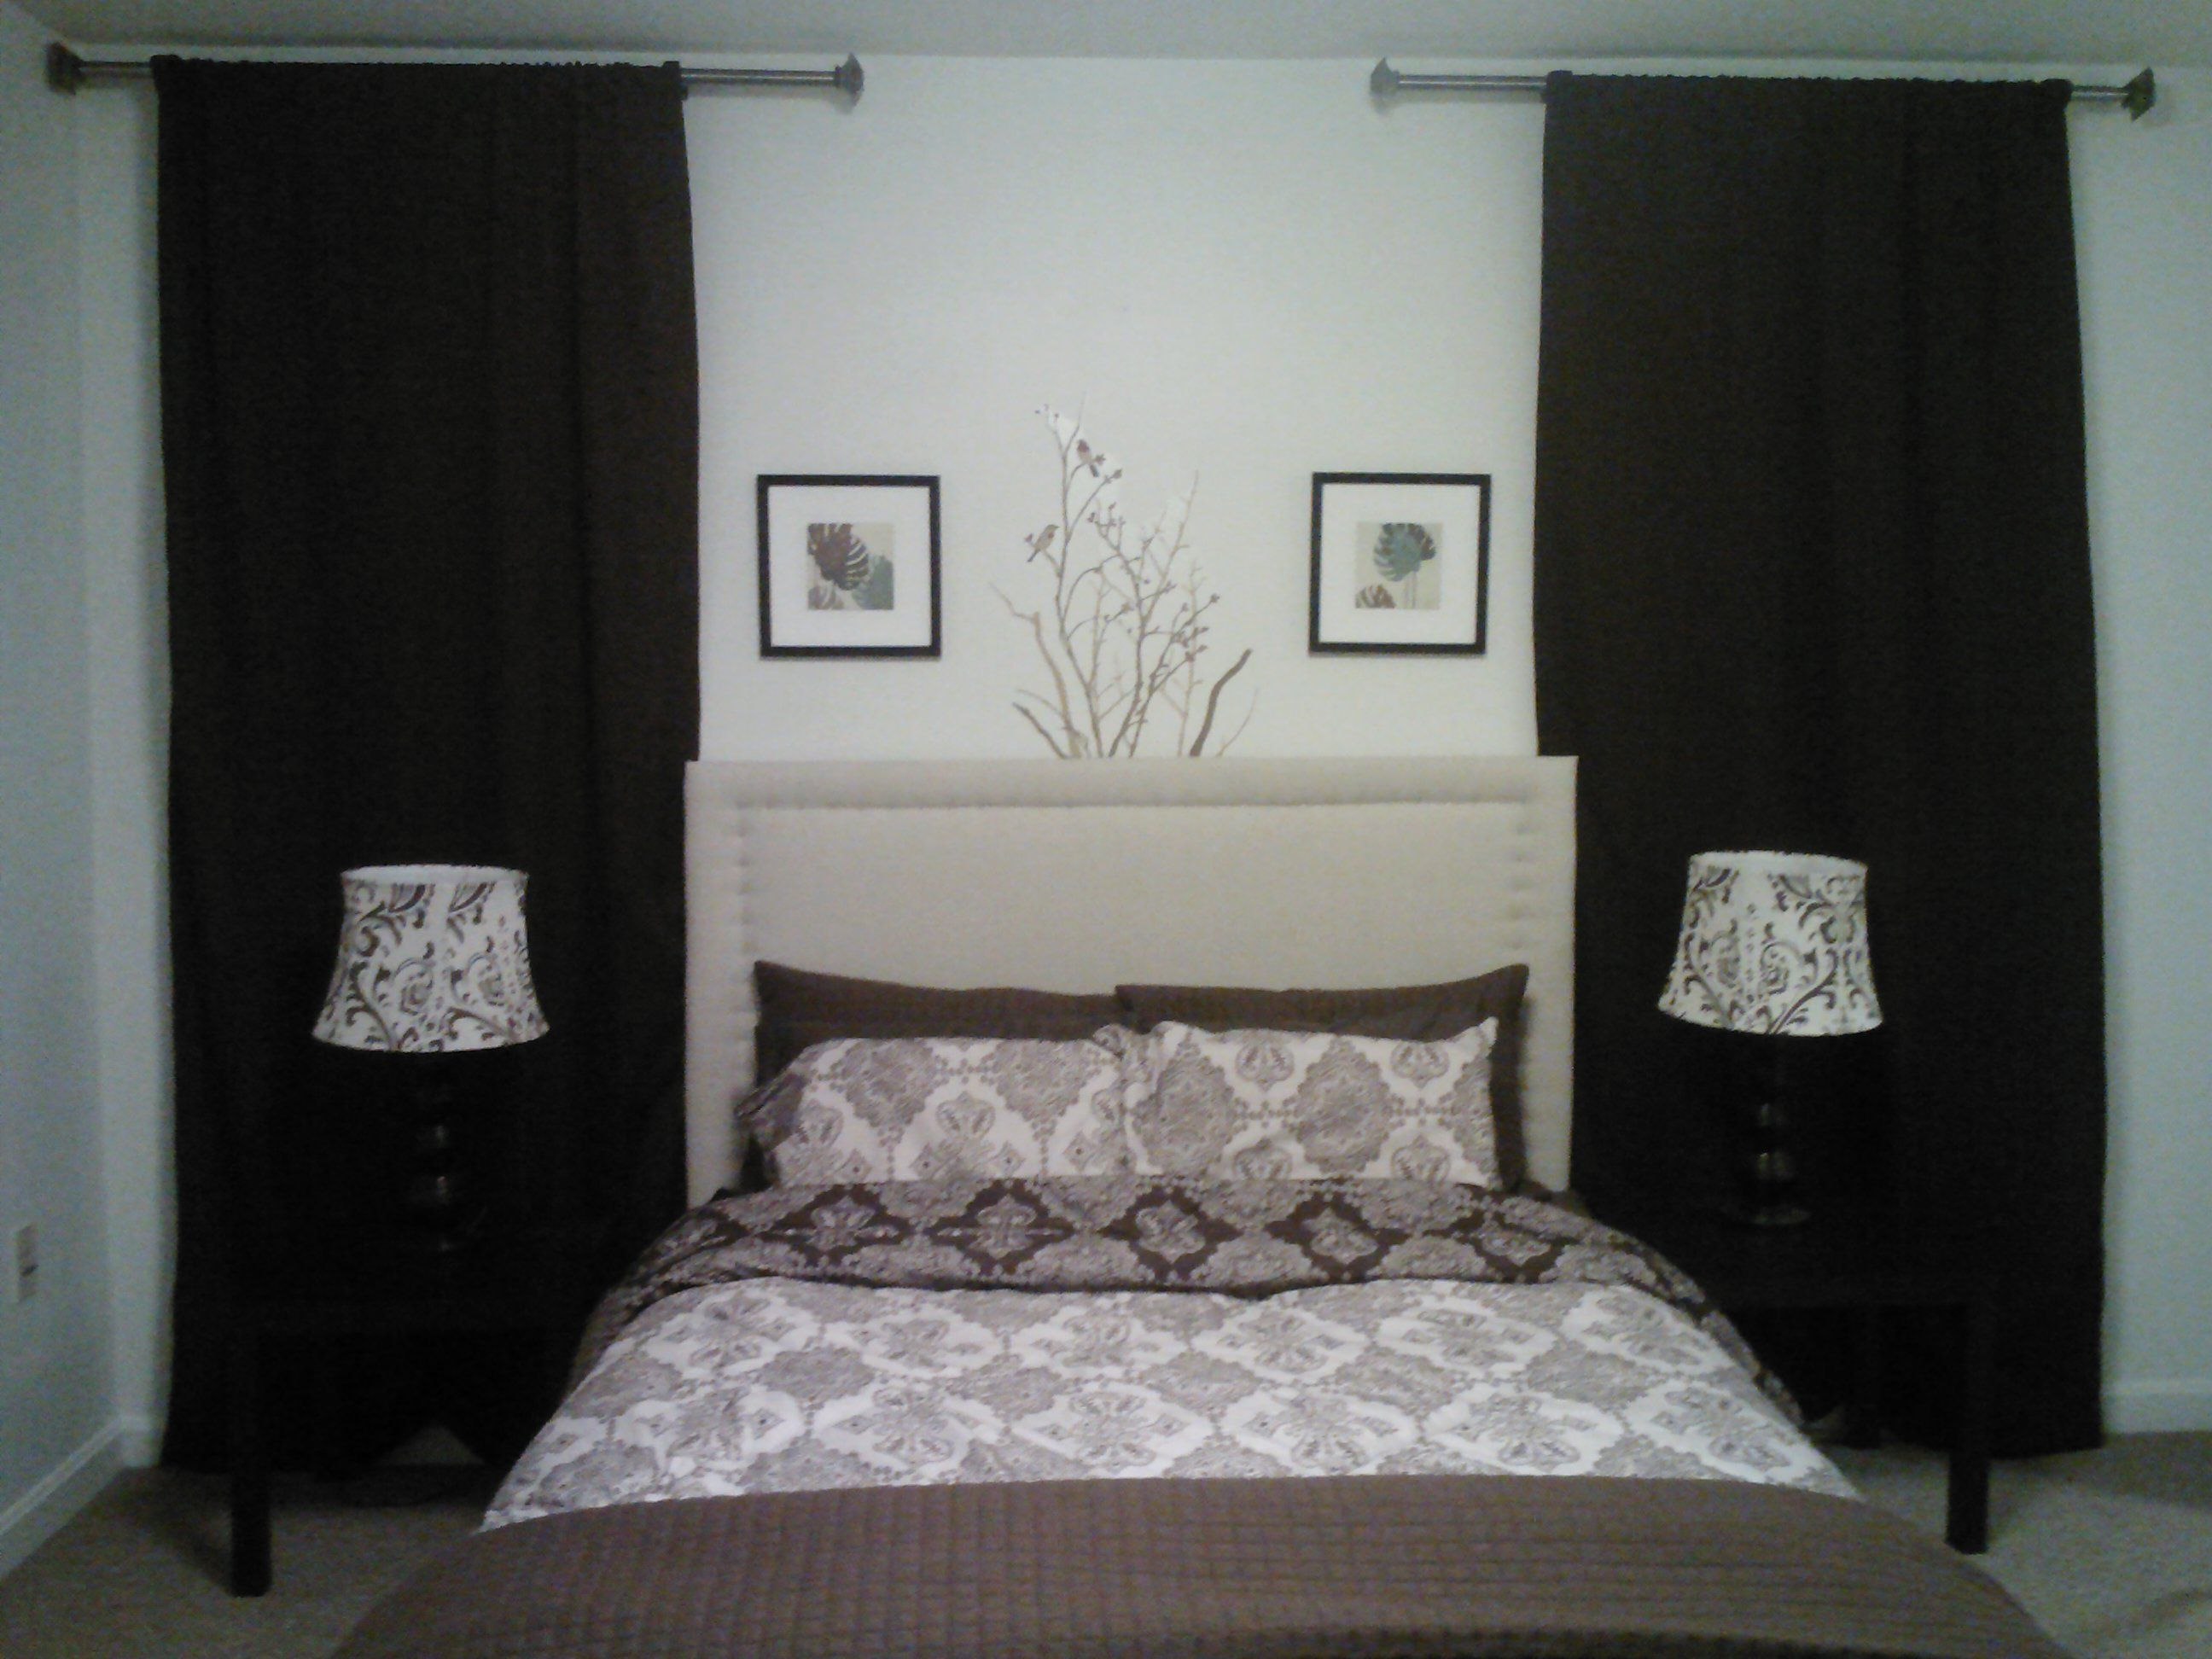 DIY headboard completed for 30 bucks and